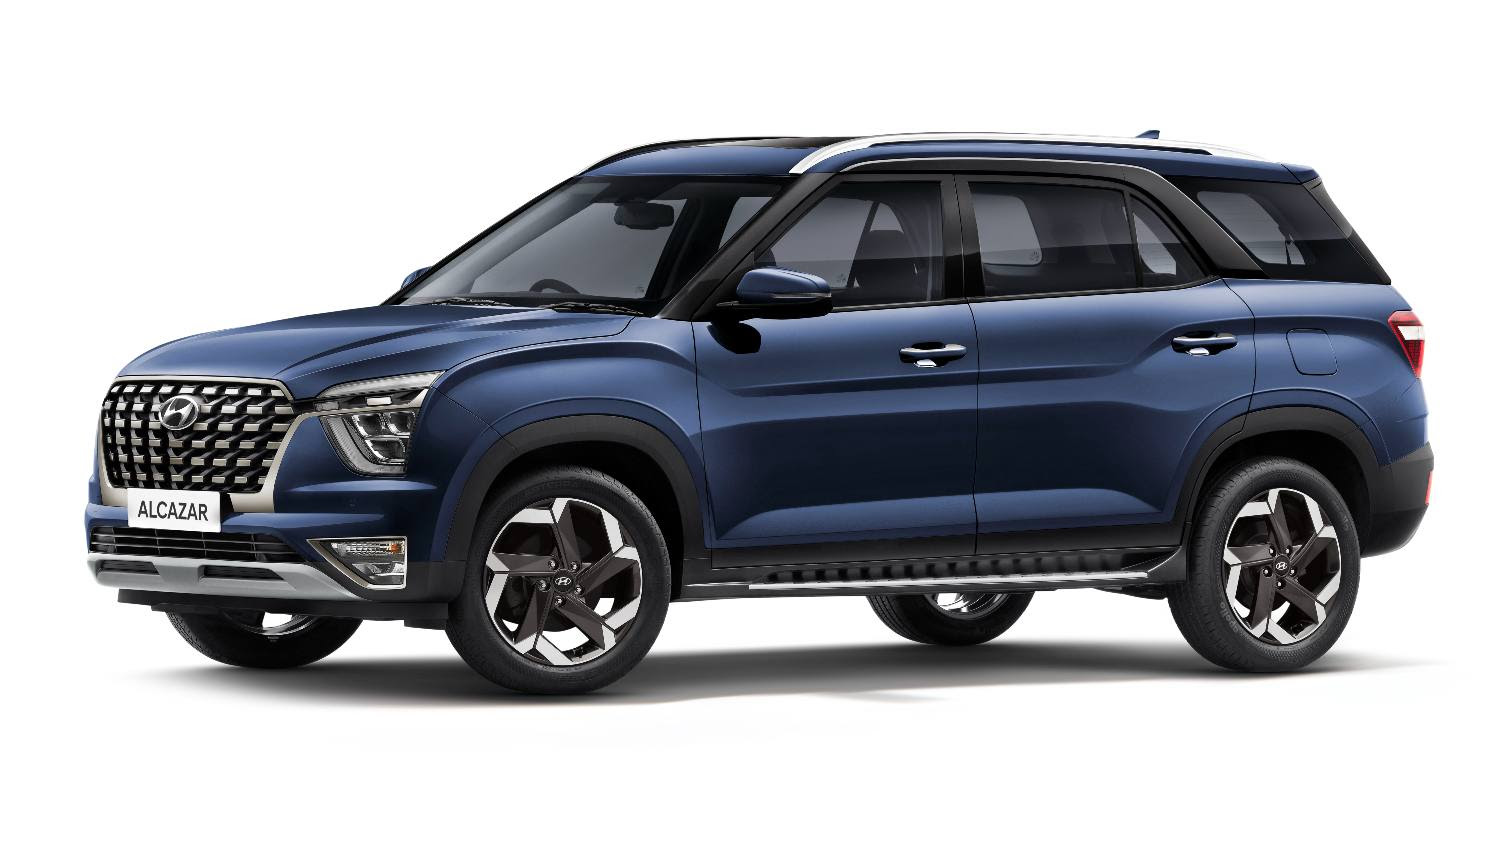 For just a small premium over the price of the Kushaq DSG, one can buy the entry-level Hyundai Alcazar, a substantially larger three-row SUV. Image: Hyundai